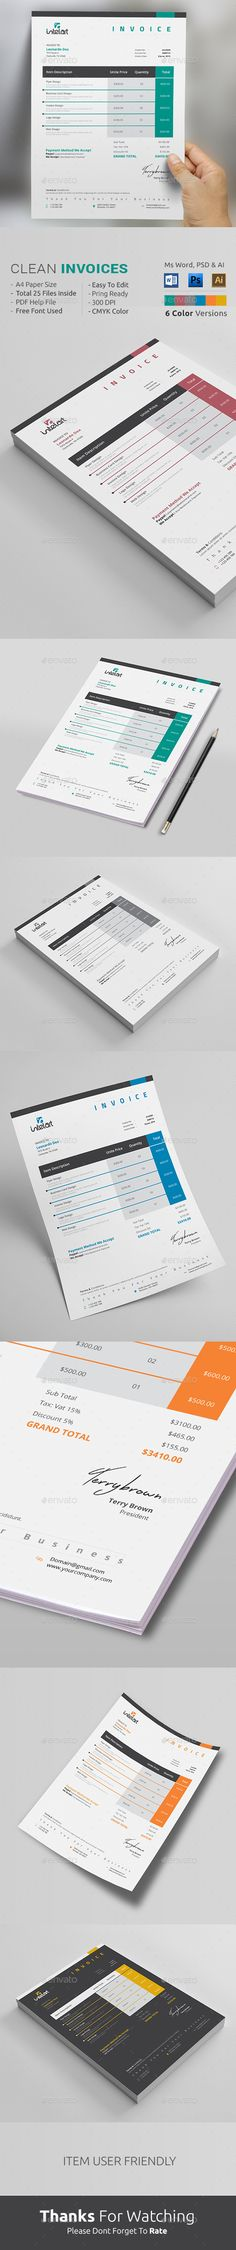 Invoice Template for stylish online professionals. Available in MS WORD, PSD & AI format. Download http://graphicriver.net/item/invoice/13634048?ref=themedevisers